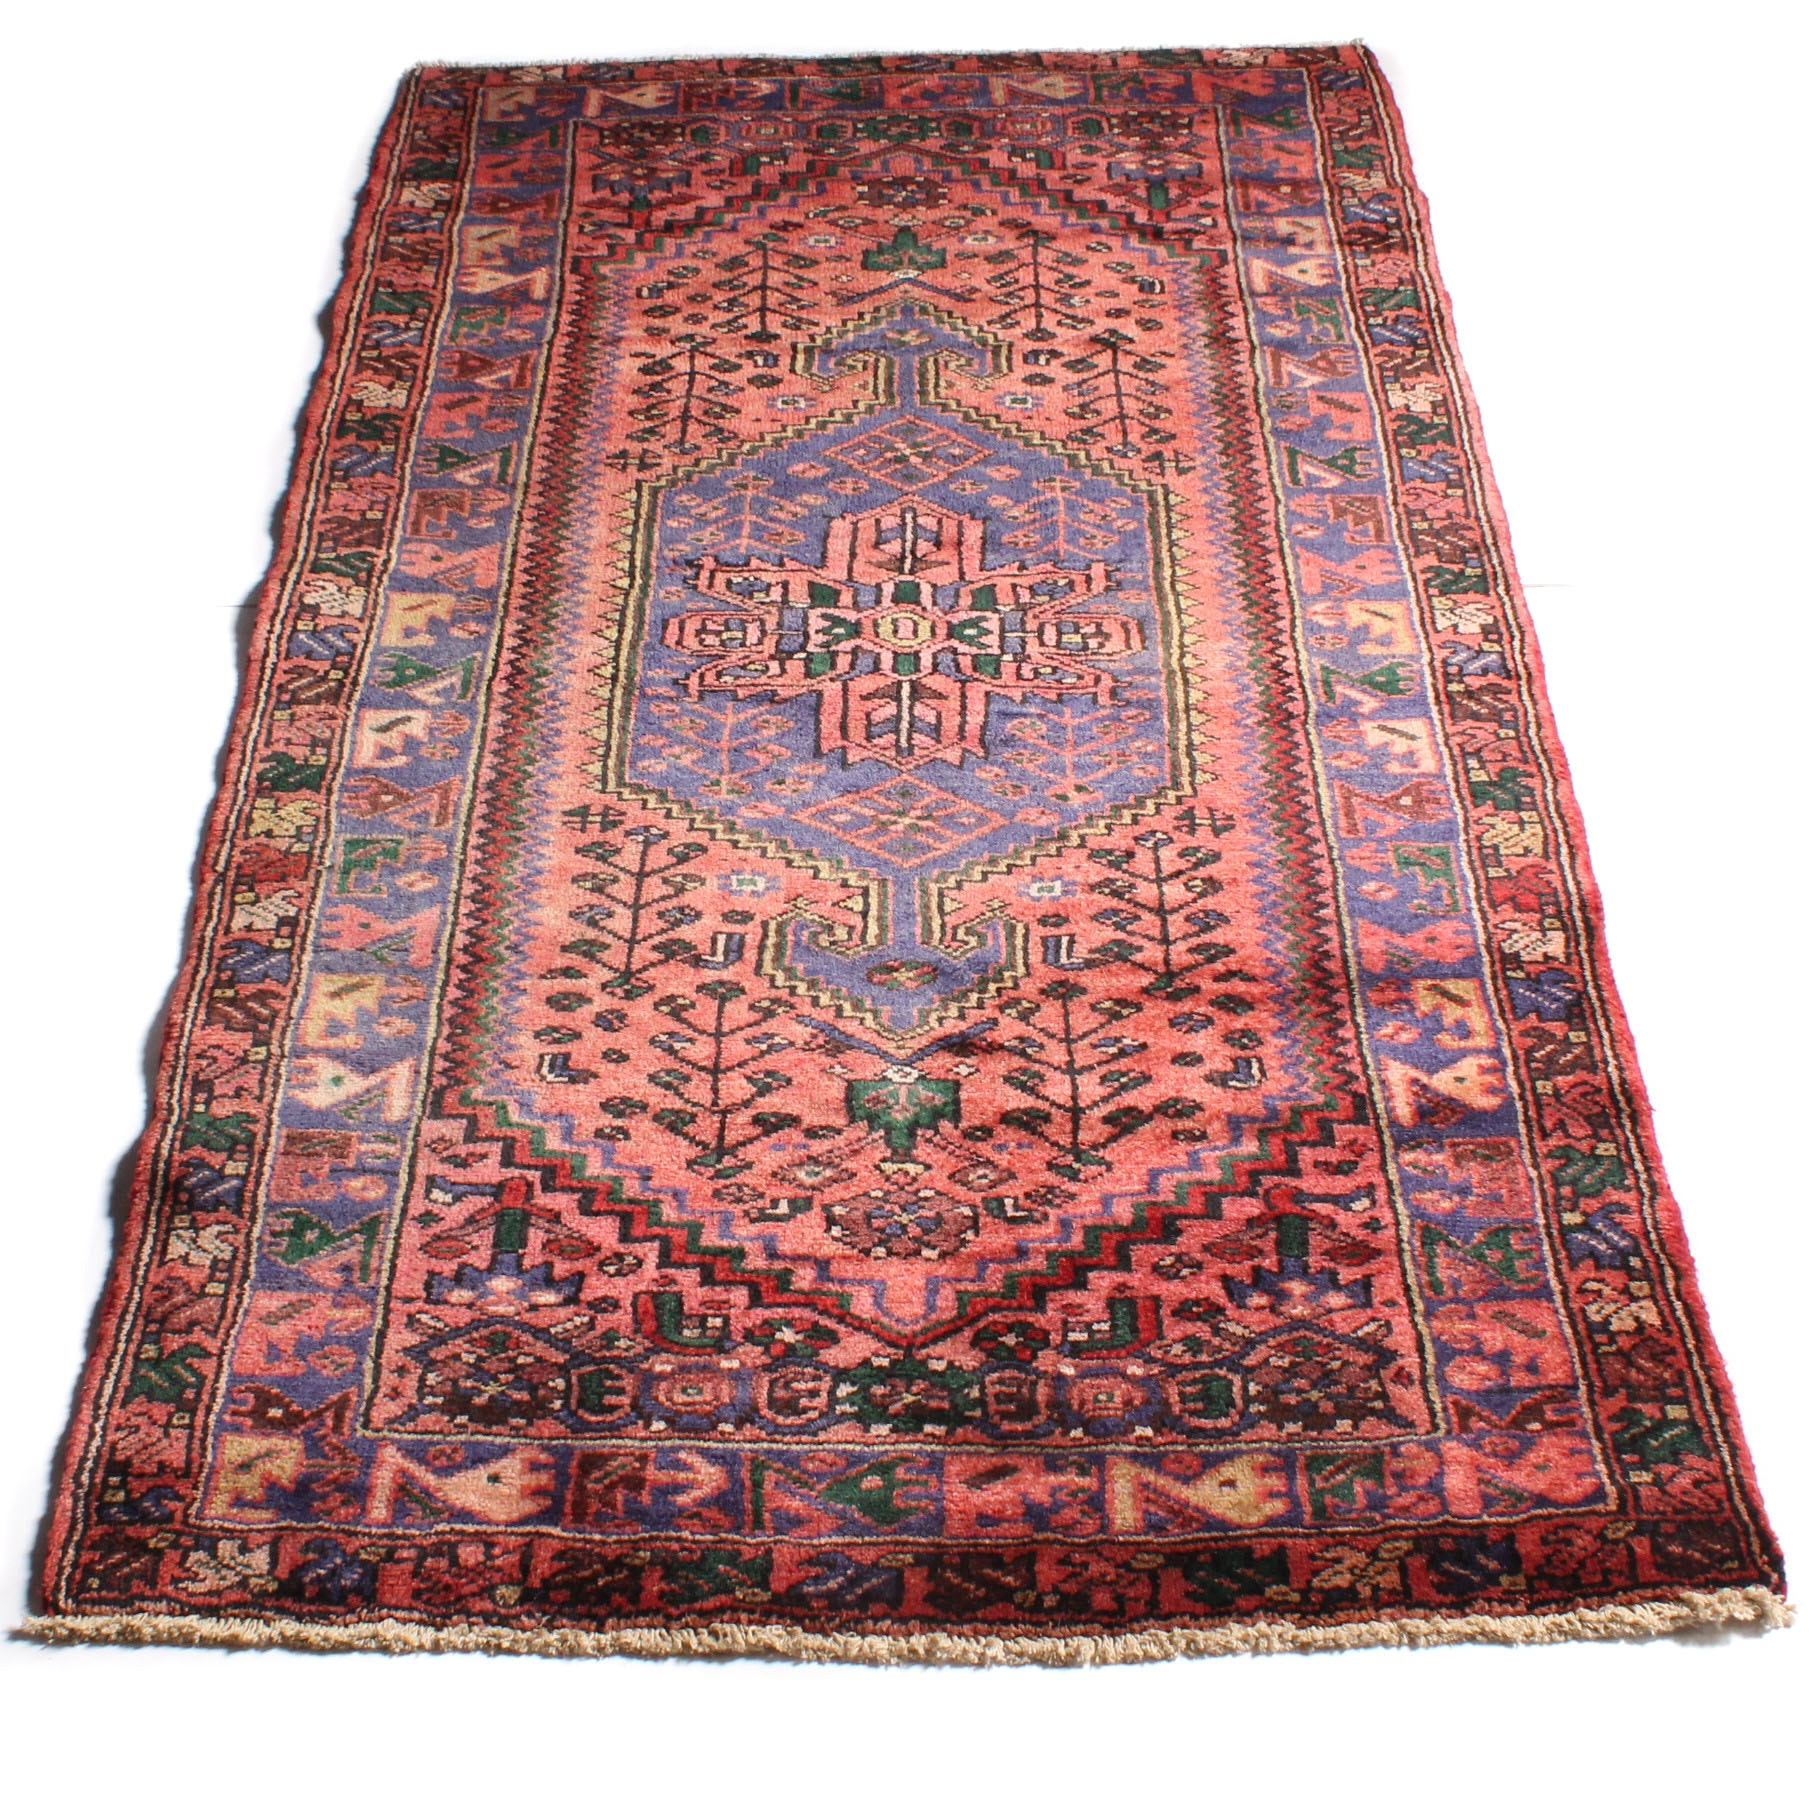 3'6 x 6'9 Hand-Knotted Persian Qoltuq Wool Rug